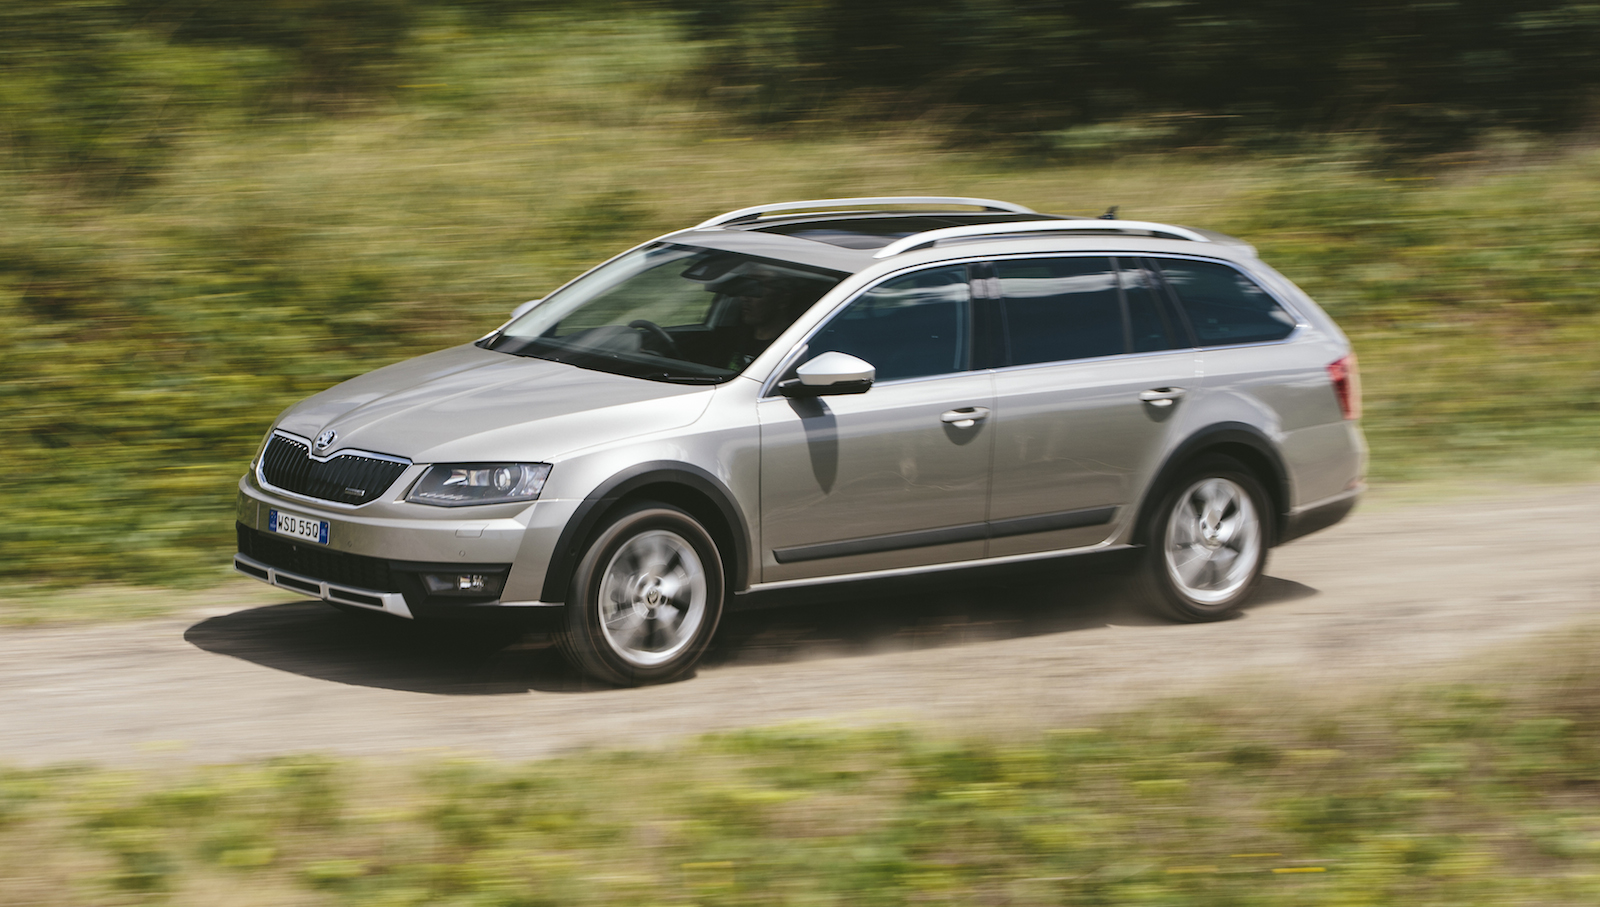 2015 skoda octavia scout 4x4 review photos caradvice. Black Bedroom Furniture Sets. Home Design Ideas